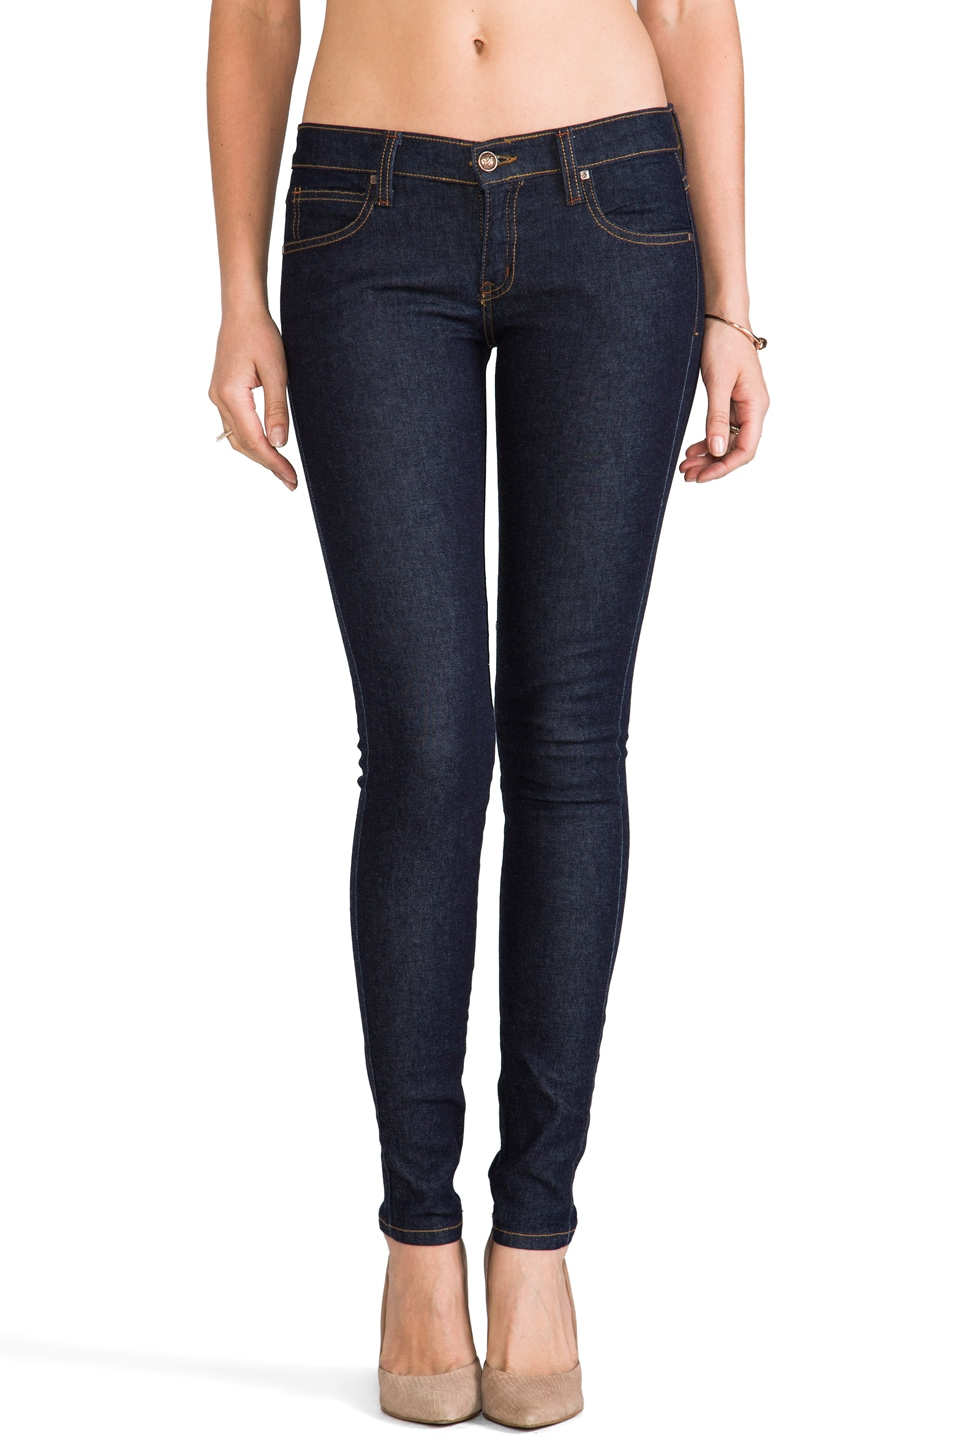 Frankie B. Jeans My BFF Clean Skinny in Black and Blue